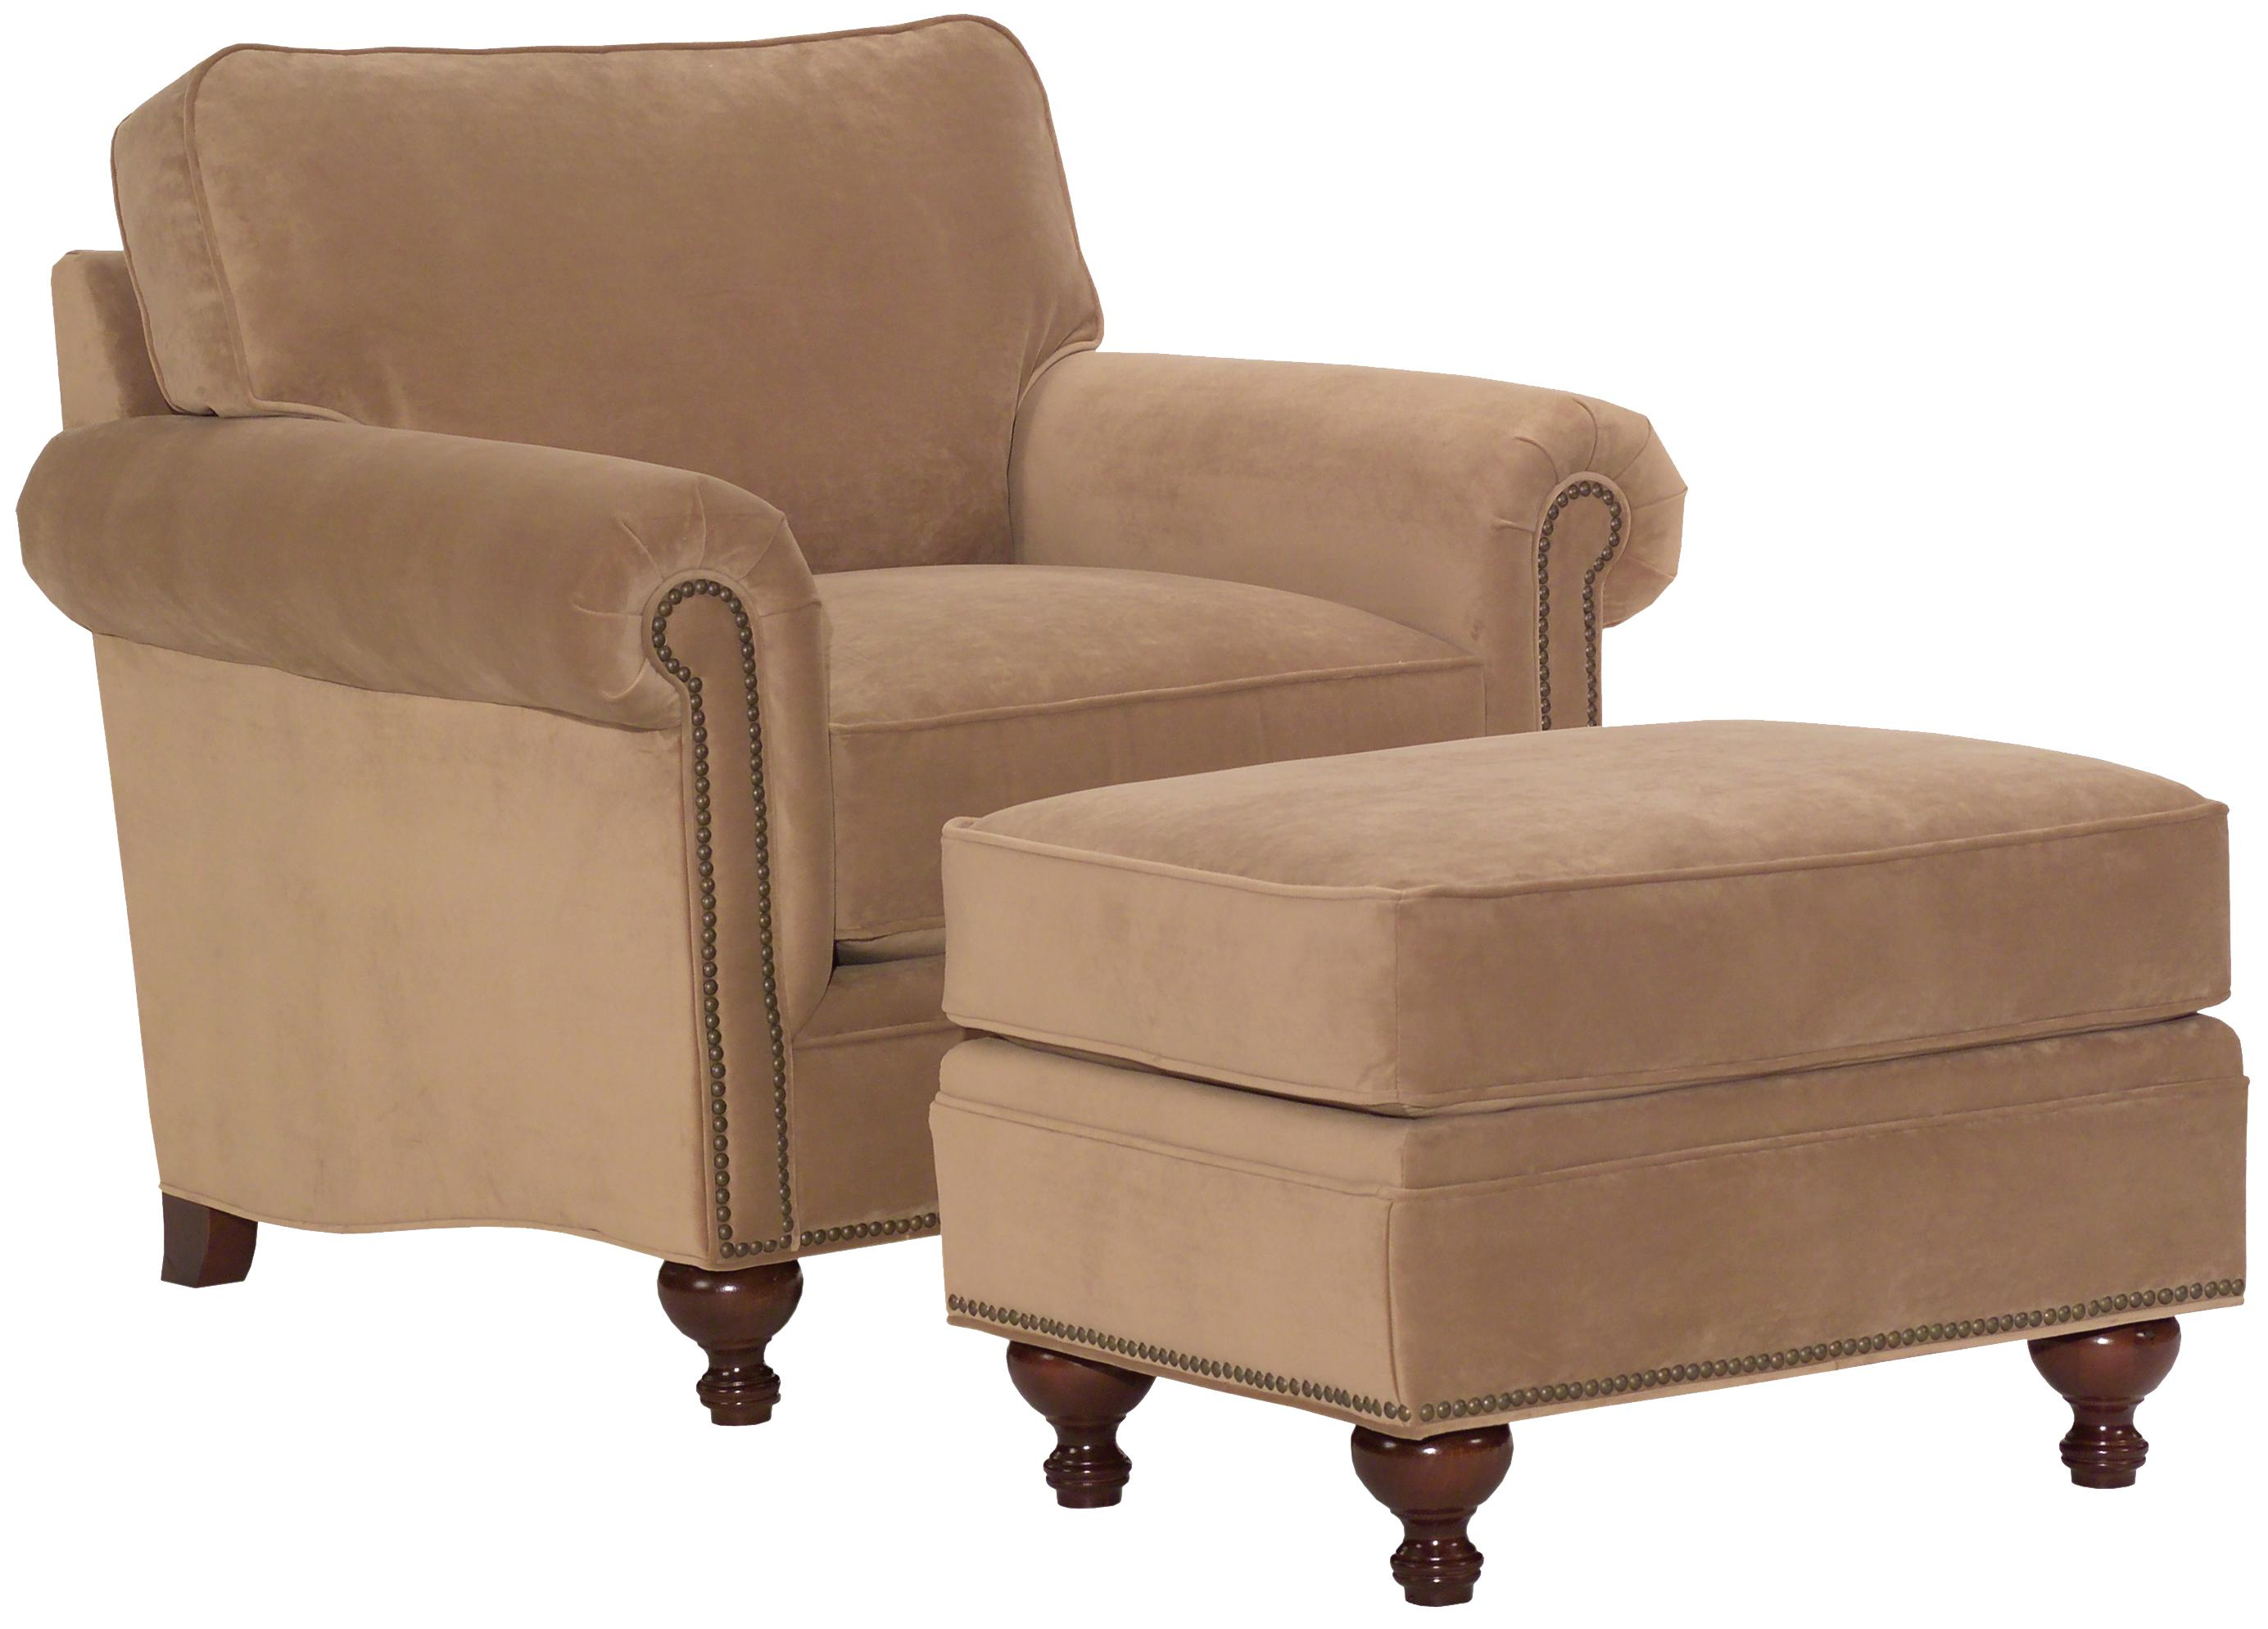 Broyhill Furniture Harrison Chair And Ottoman